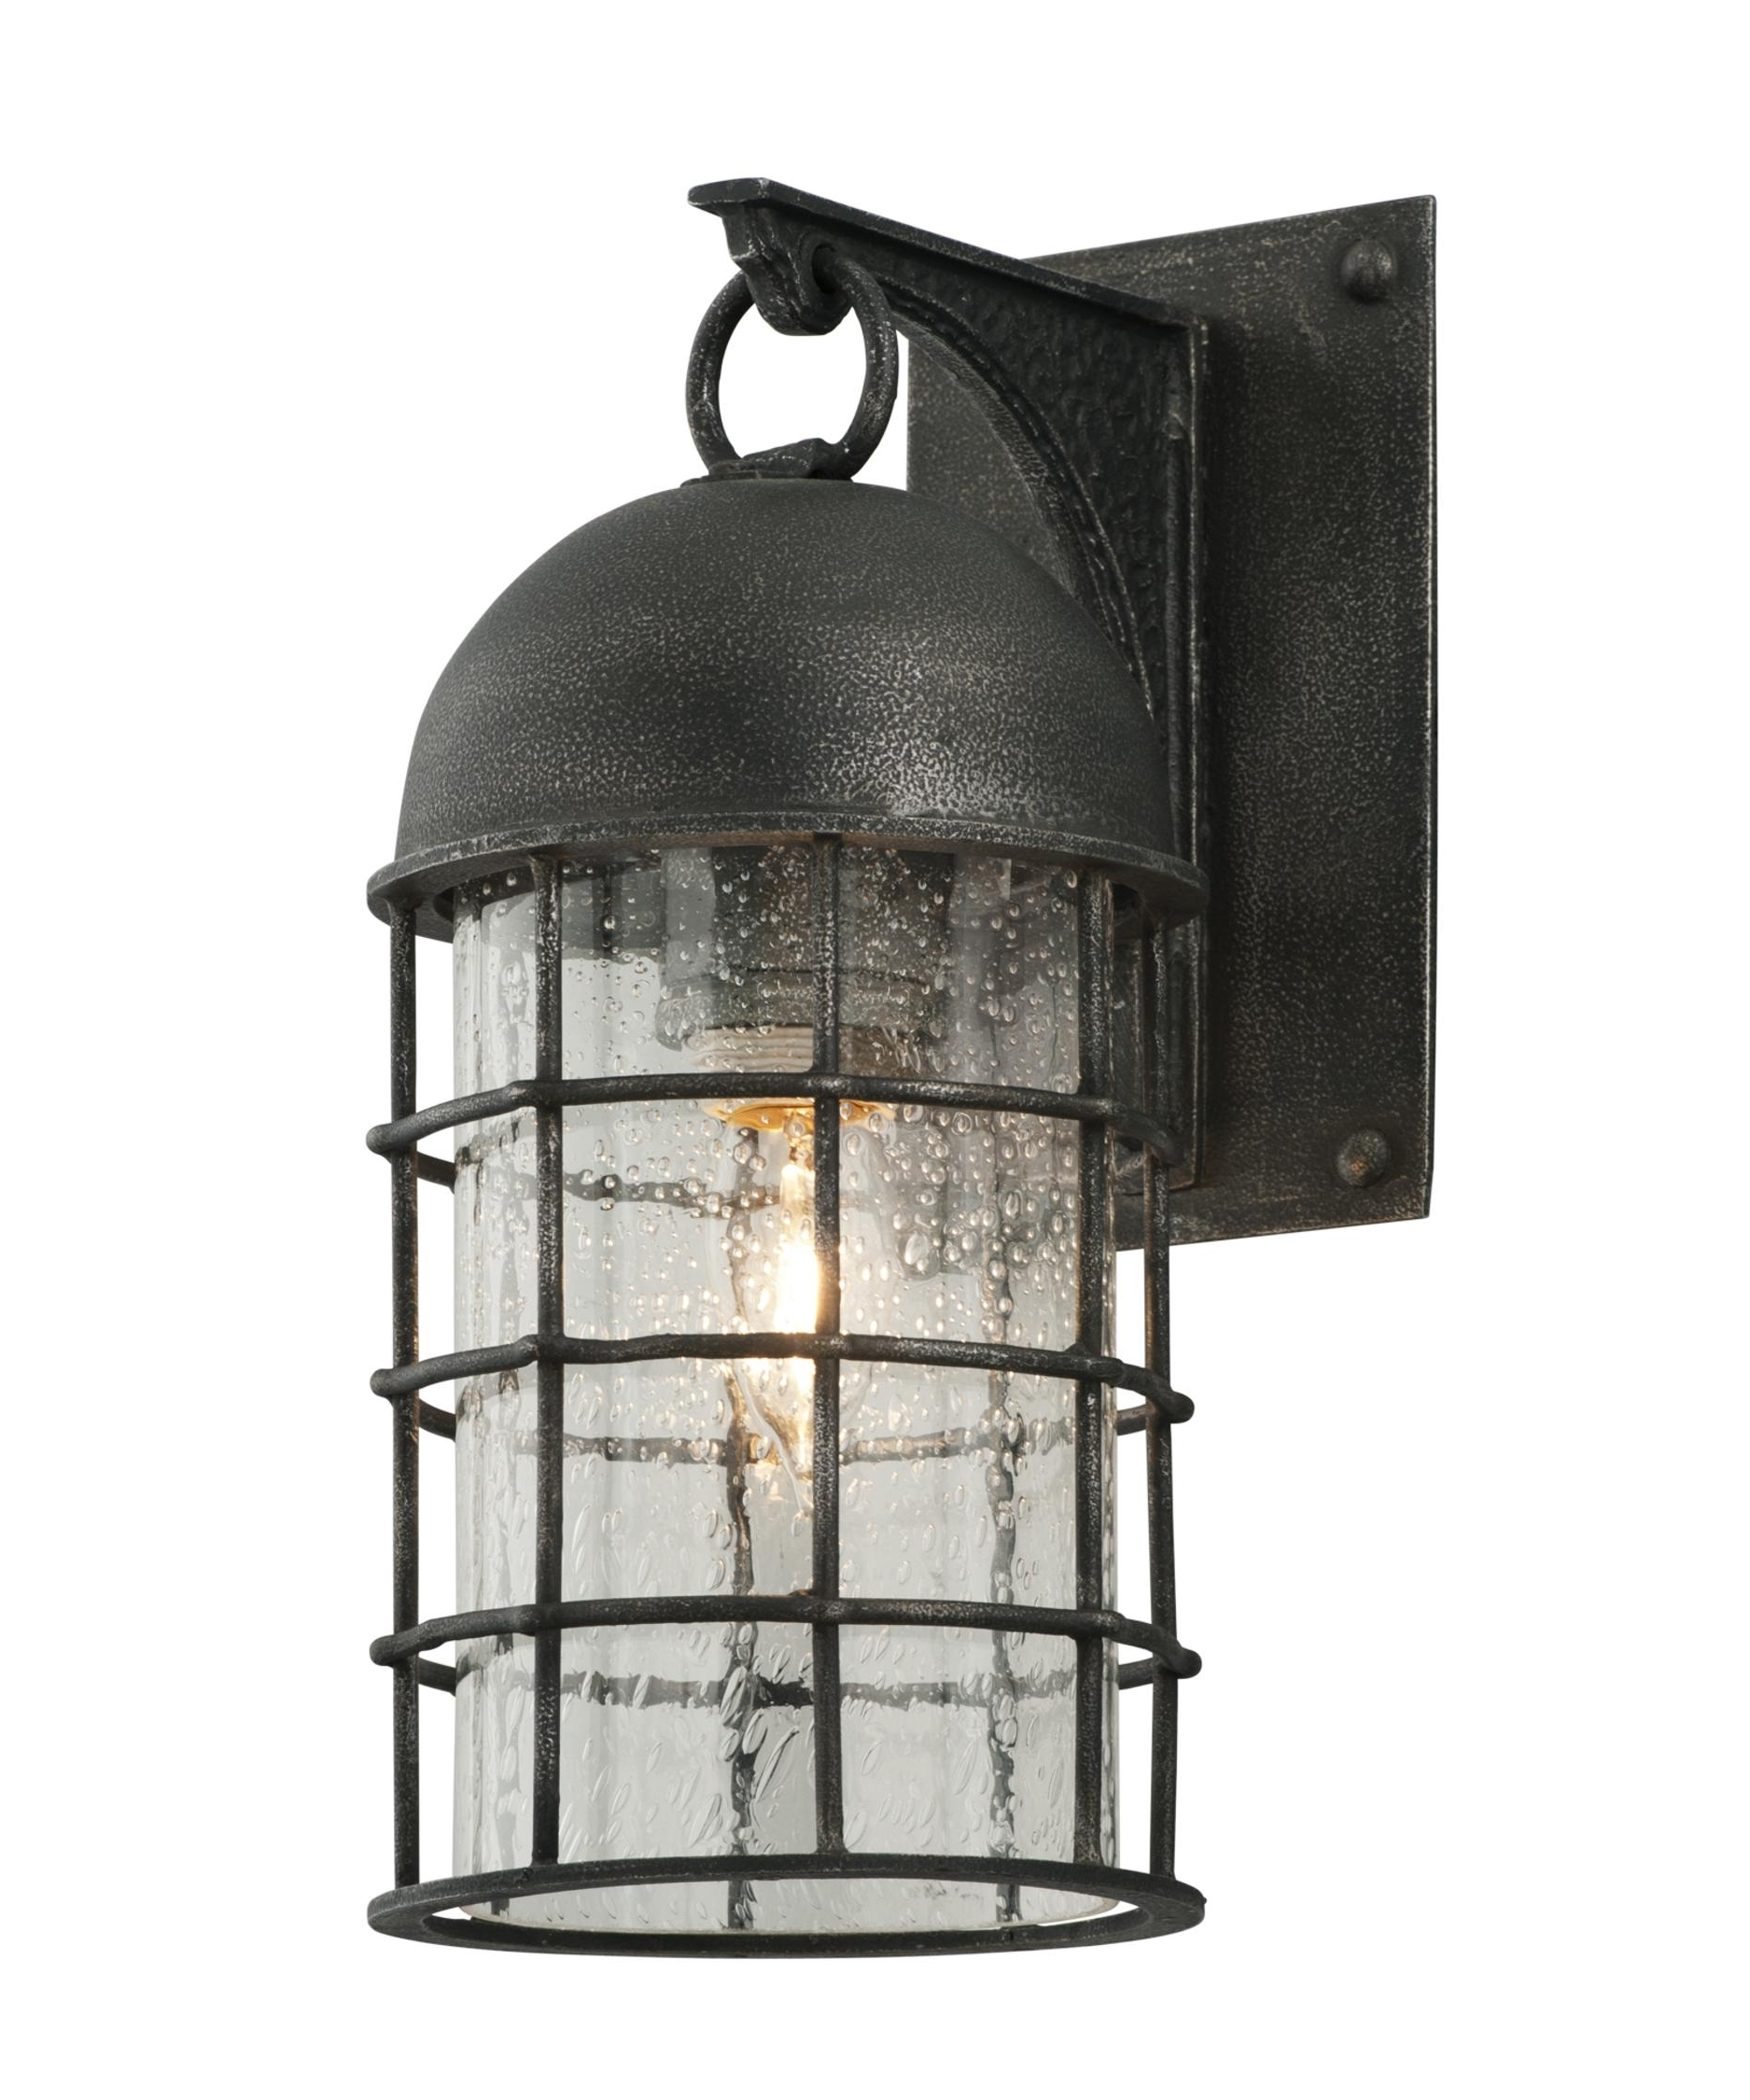 Outdoor : Outdoor Wall Sconce Lighting Belden Place Medium Linden Pertaining To Most Current Outdoor Wall Mounted Accent Lighting (View 10 of 20)